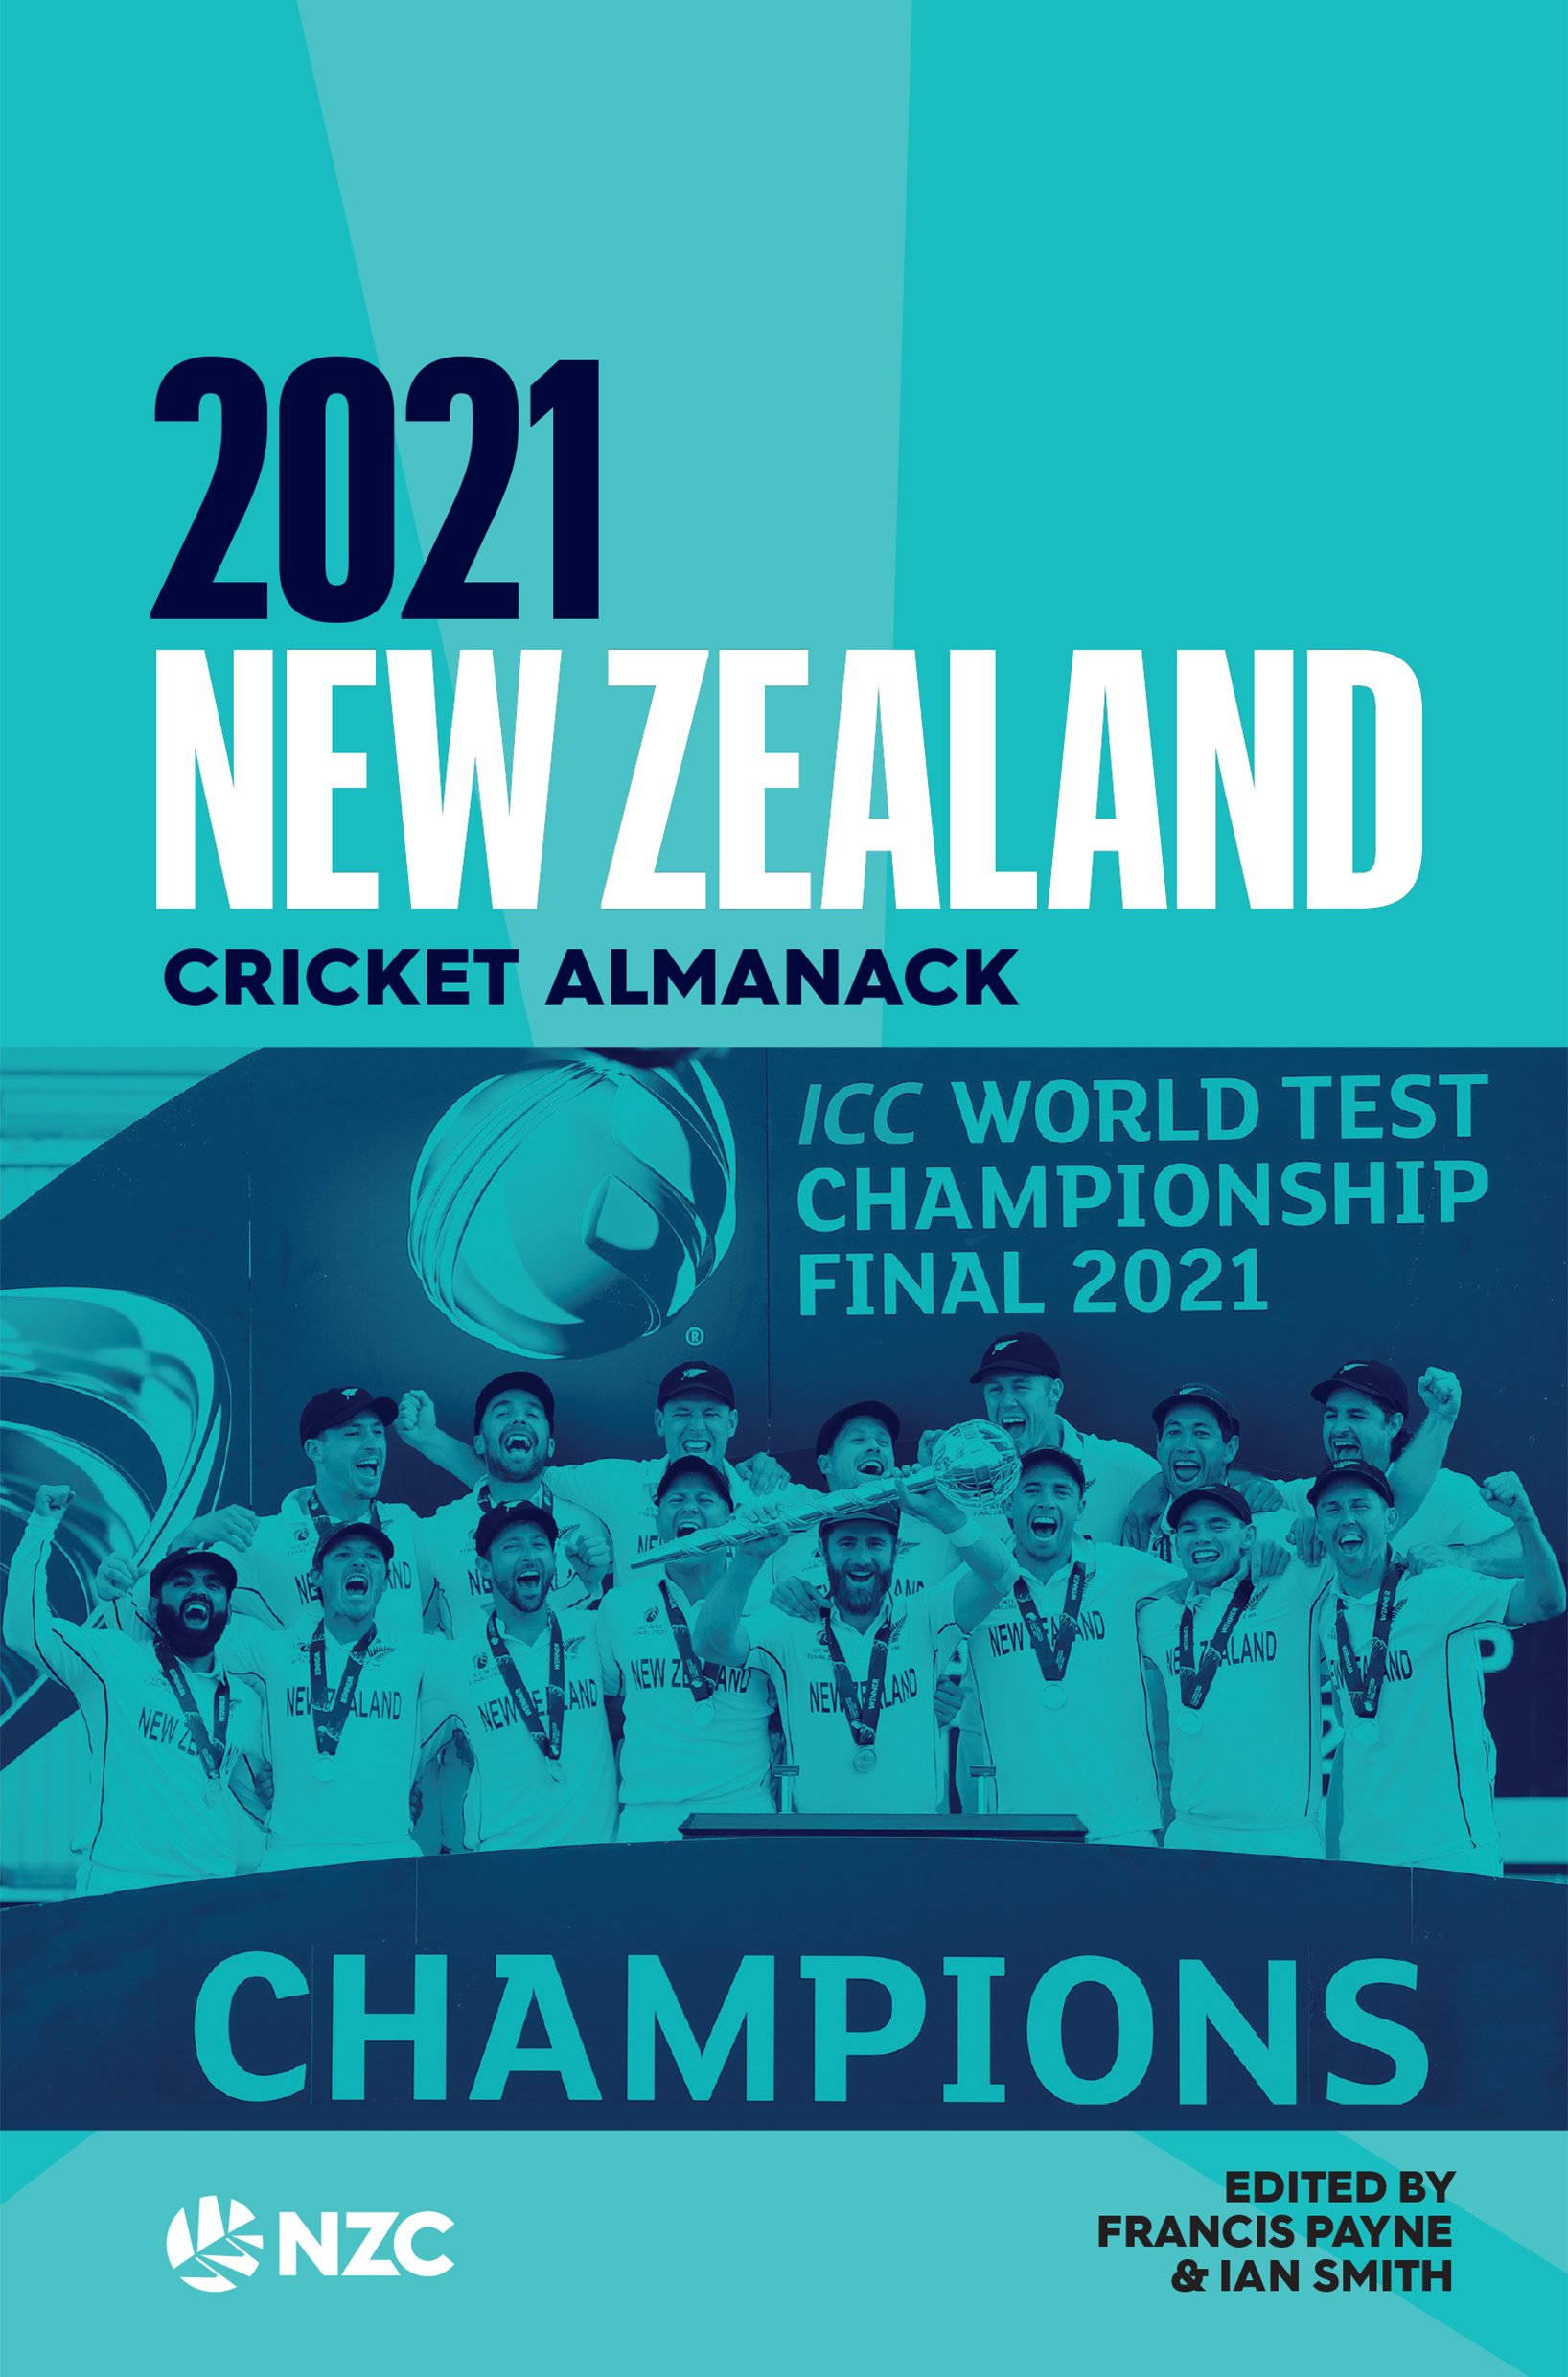 Cover art in two tones of blue, with the word CHAMPIONS written over the outline of a team.